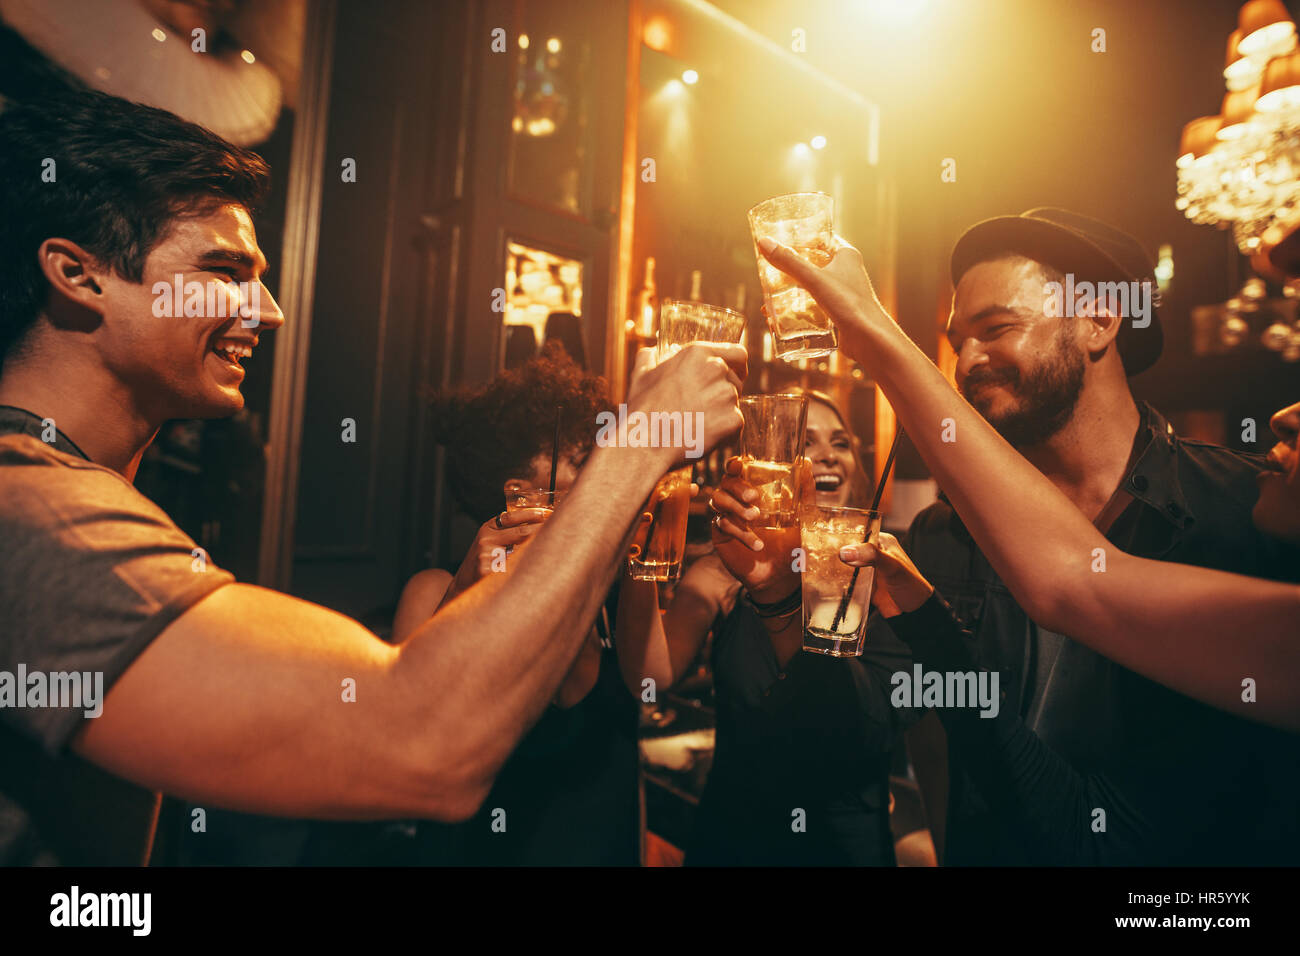 Young people celebrating and toasting drinks at nightclub. Friends having good time at club. - Stock Image